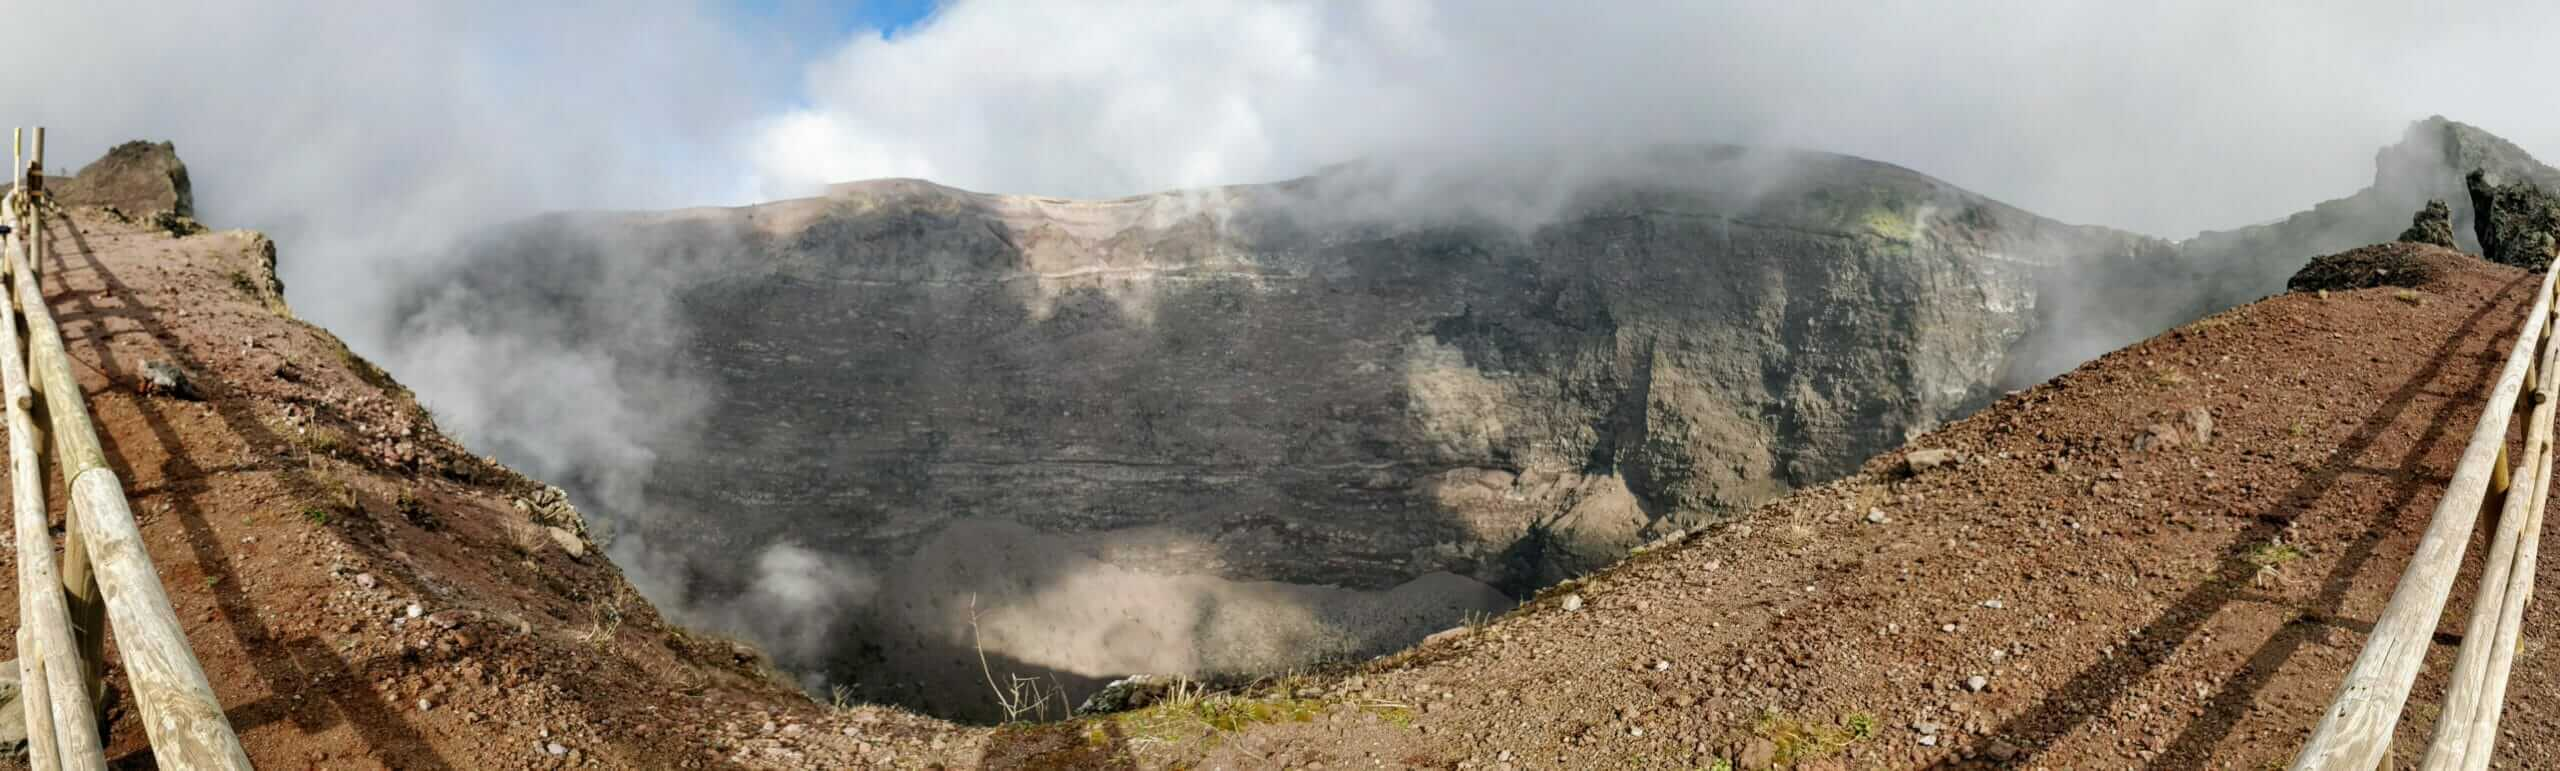 Panoramic shot of Mount Vesuvius volcano crater